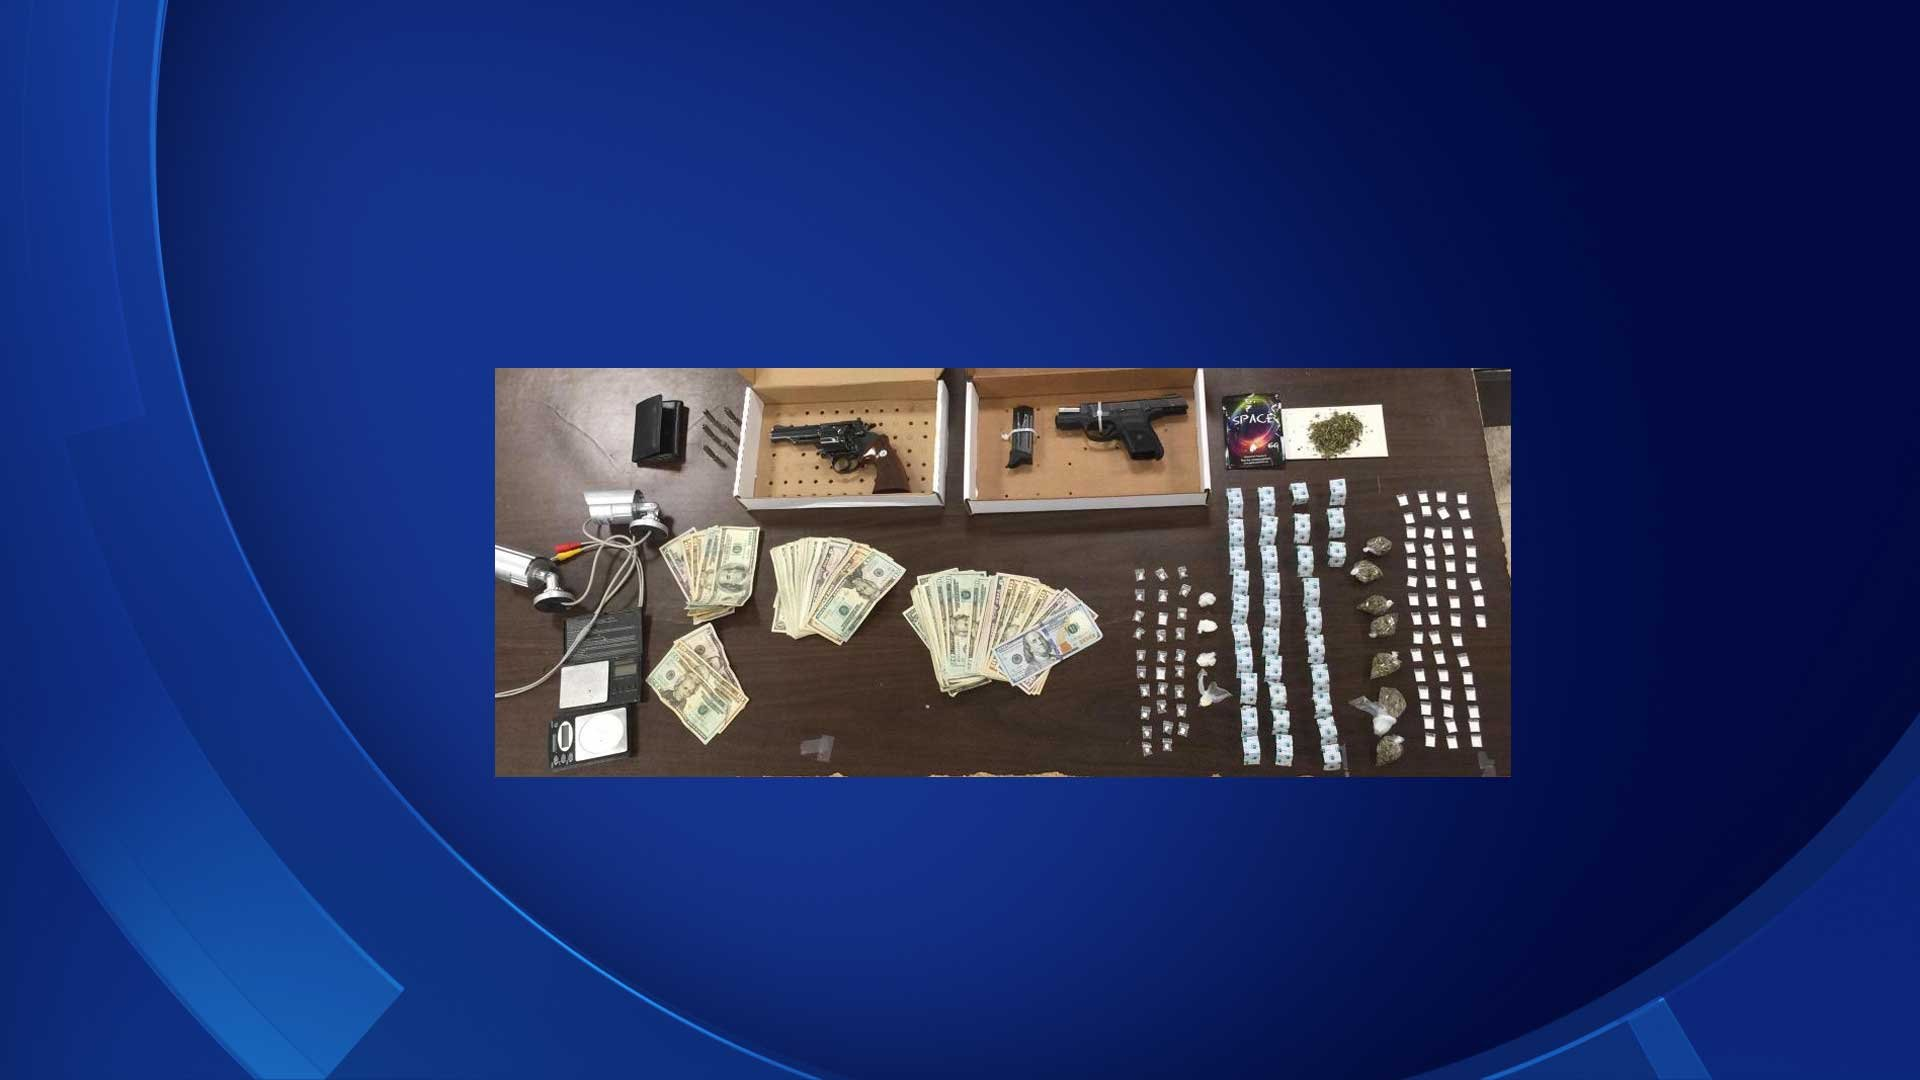 The following items were seized by Hartford police from an illegal boarding house. (Hartford police)